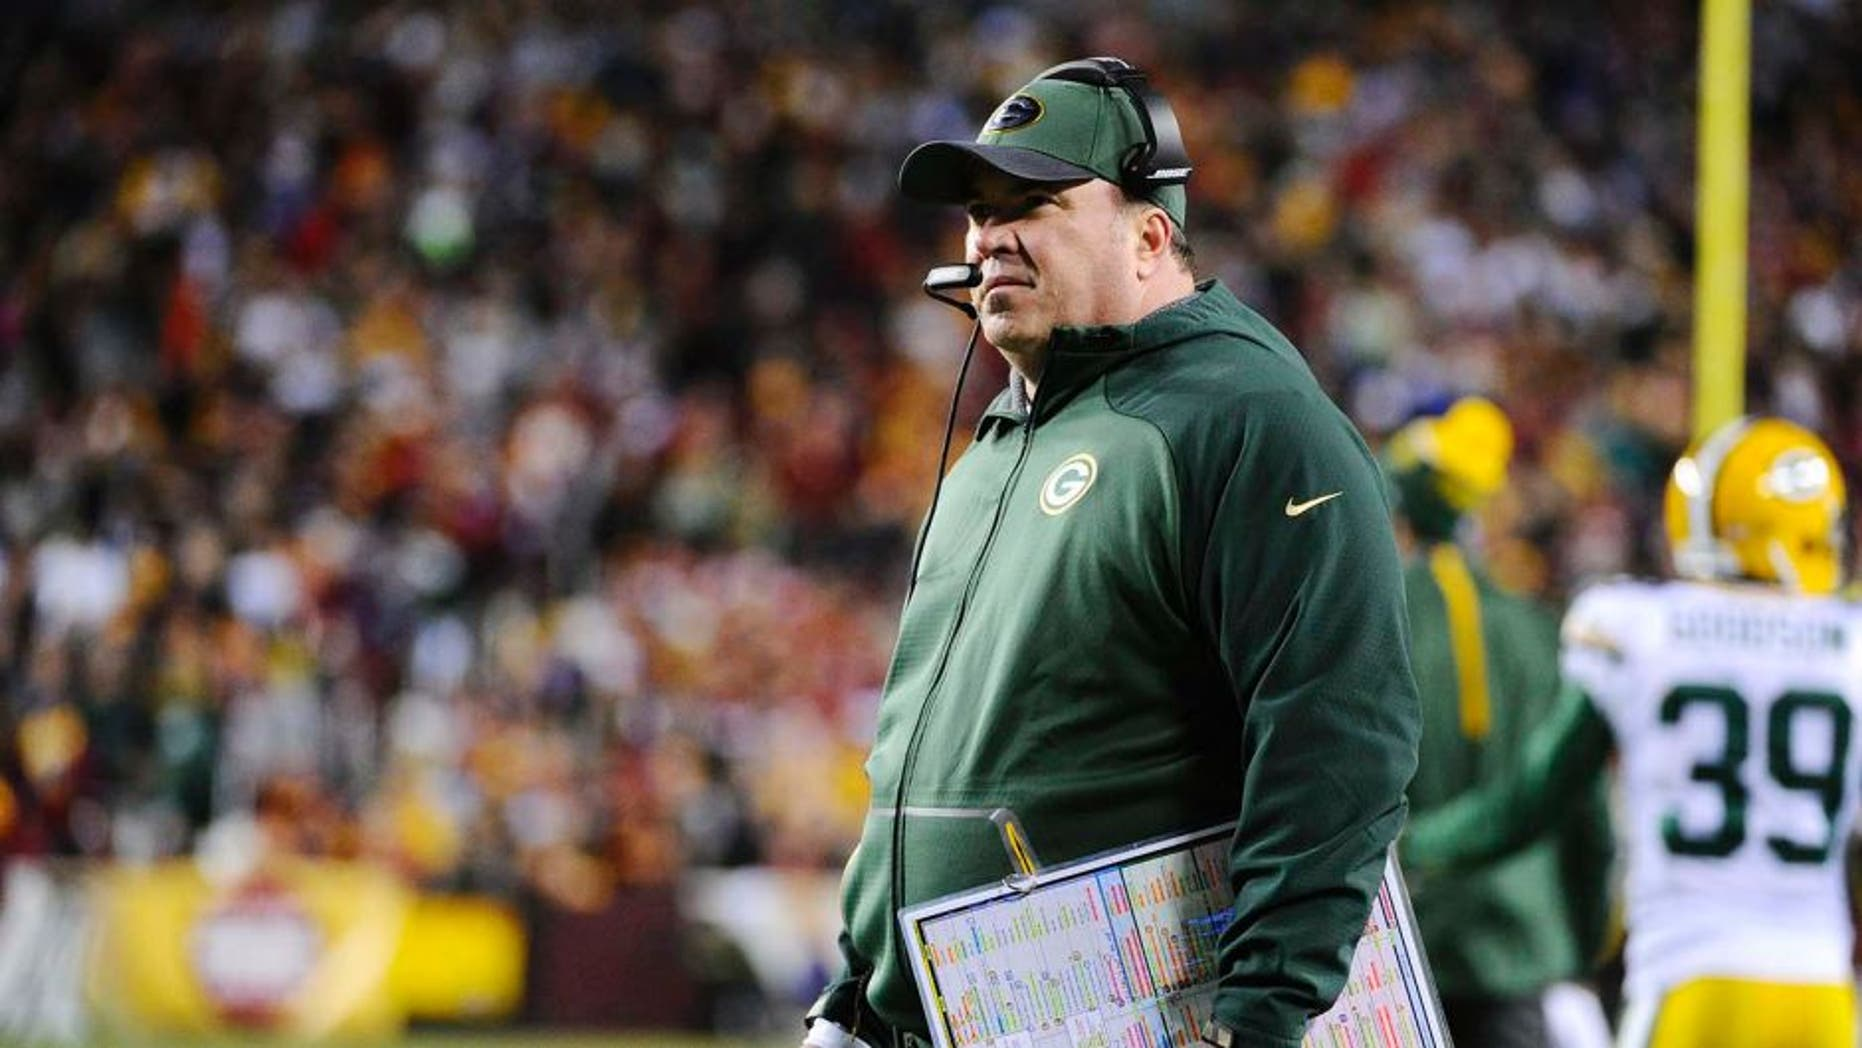 Jan 10, 2016; Landover, MD, USA; Green Bay Packers head coach Mike McCarthy looks on from the sidelines against the Washington Redskins during the second half in a NFC Wild Card playoff football game at FedEx Field. Mandatory Credit: Brad Mills-USA TODAY Sports